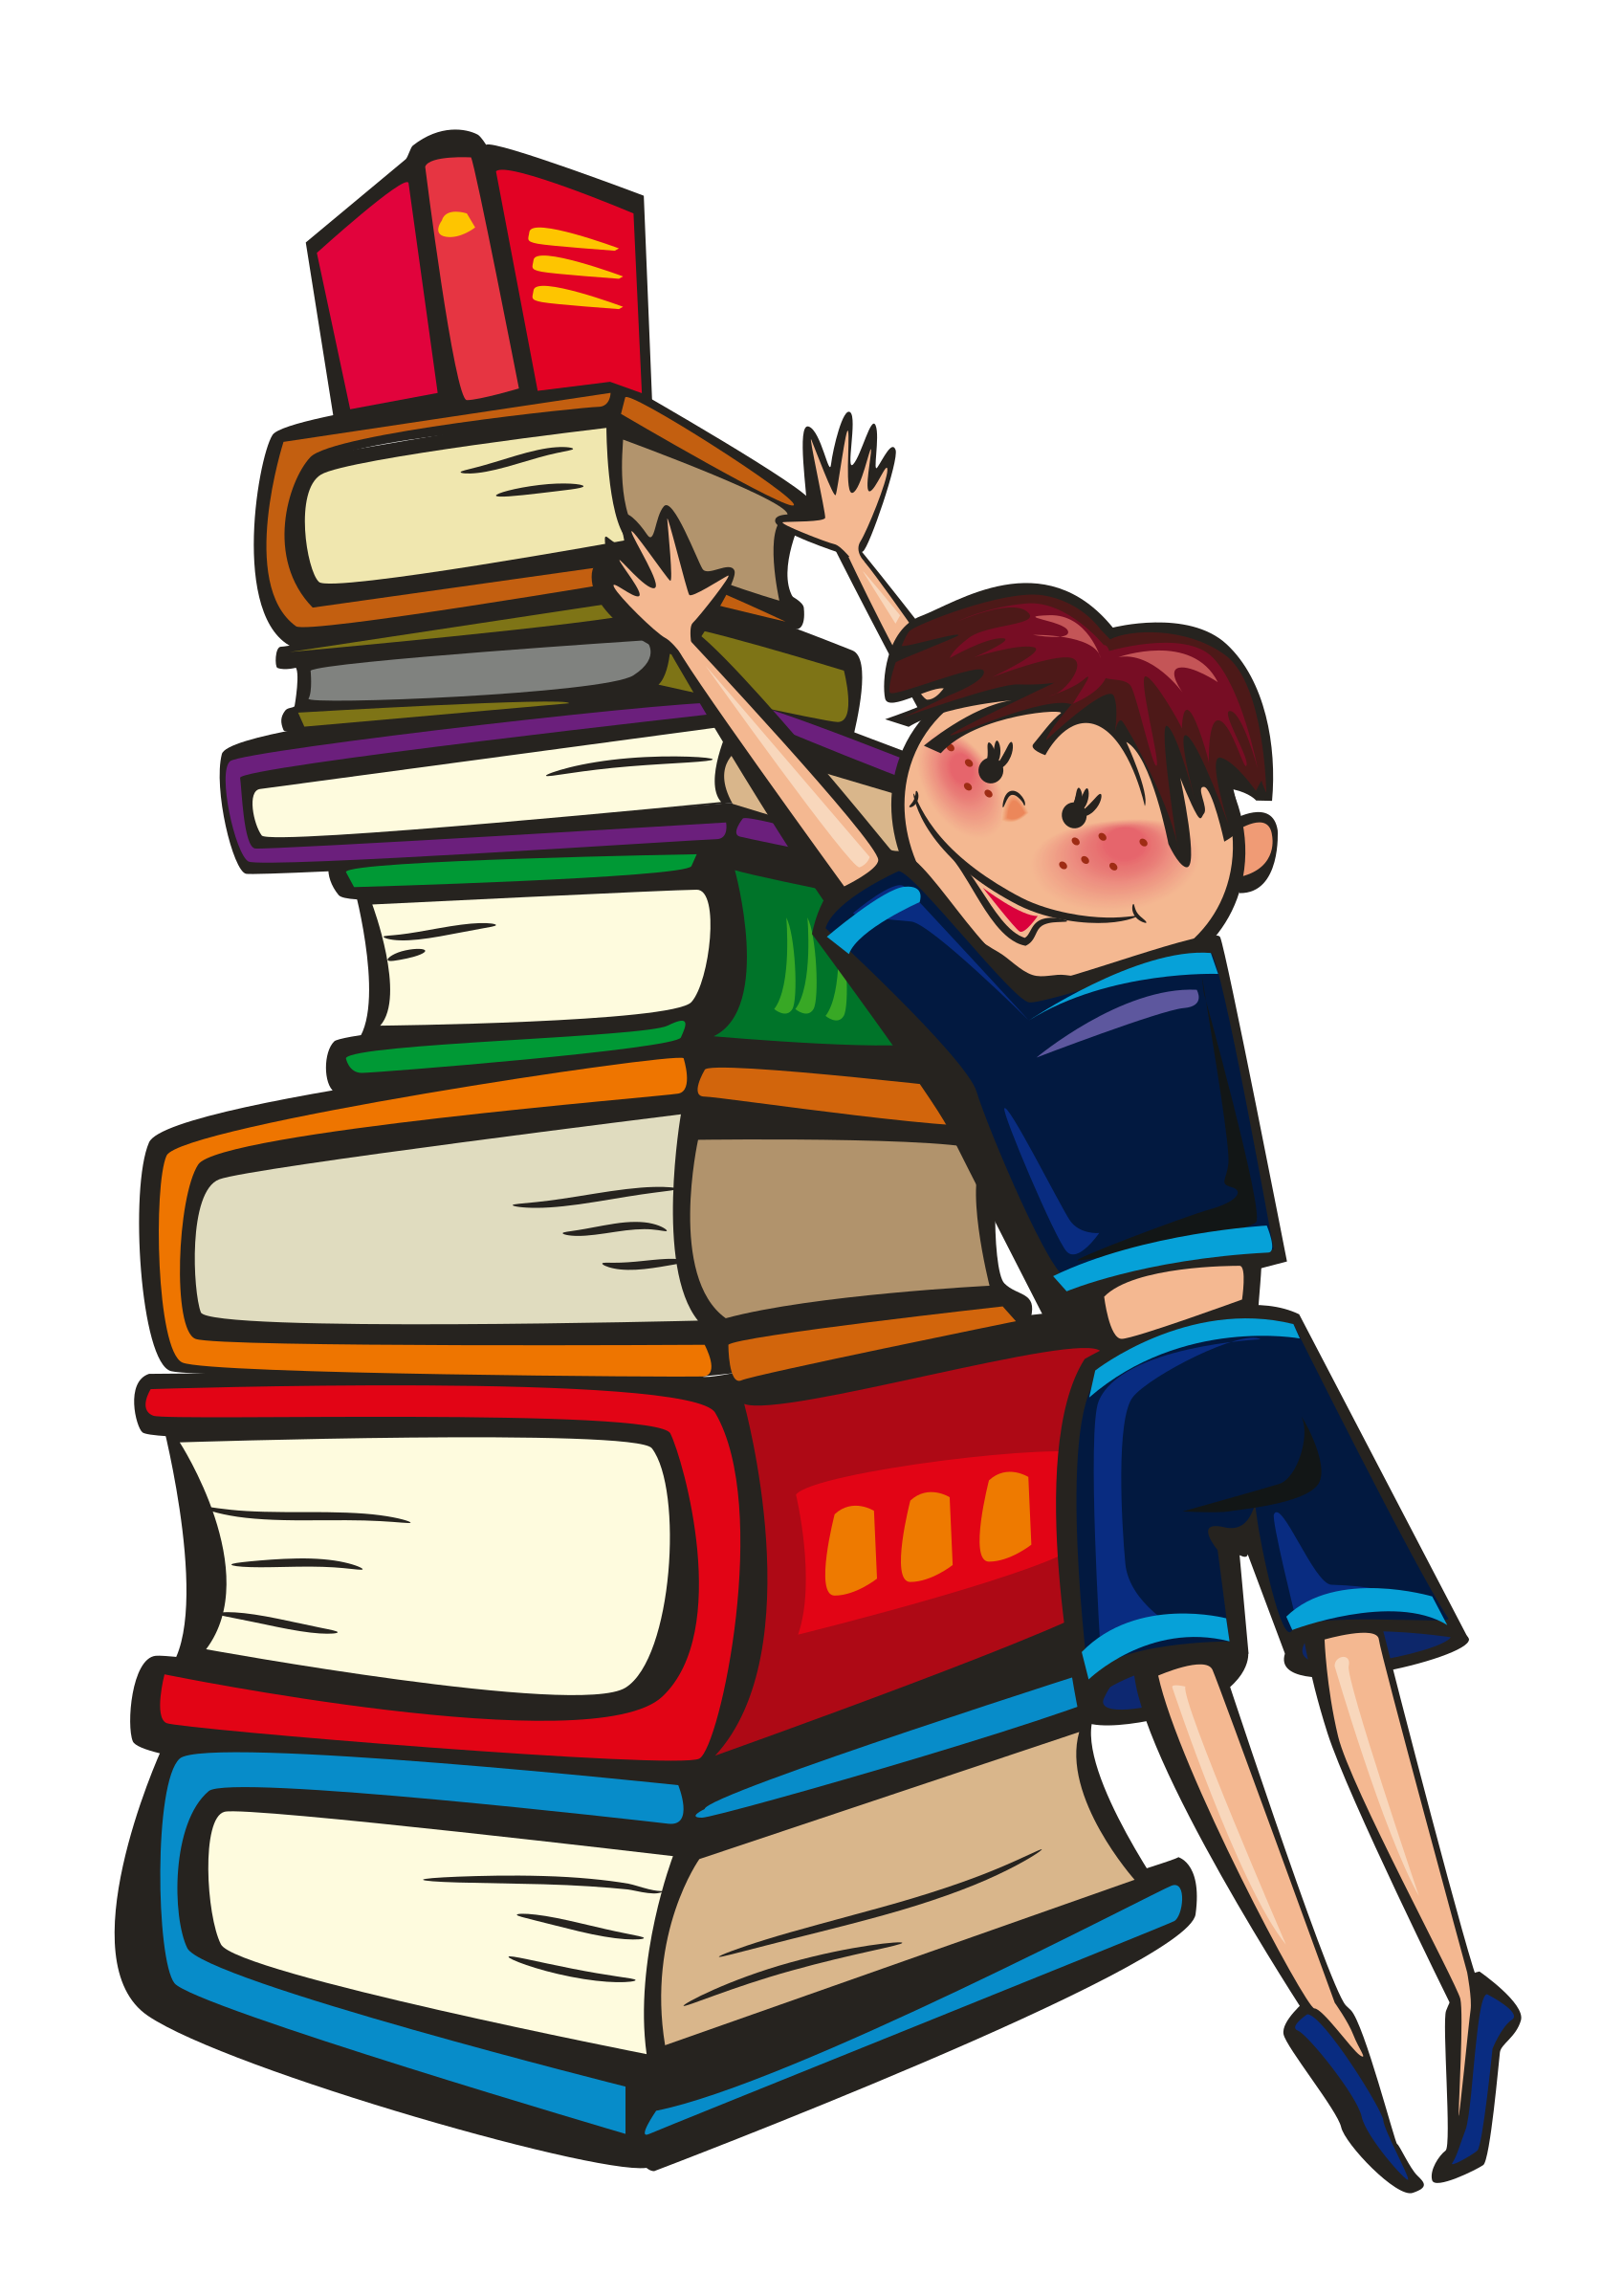 School days by sammo. Treasure clipart reading